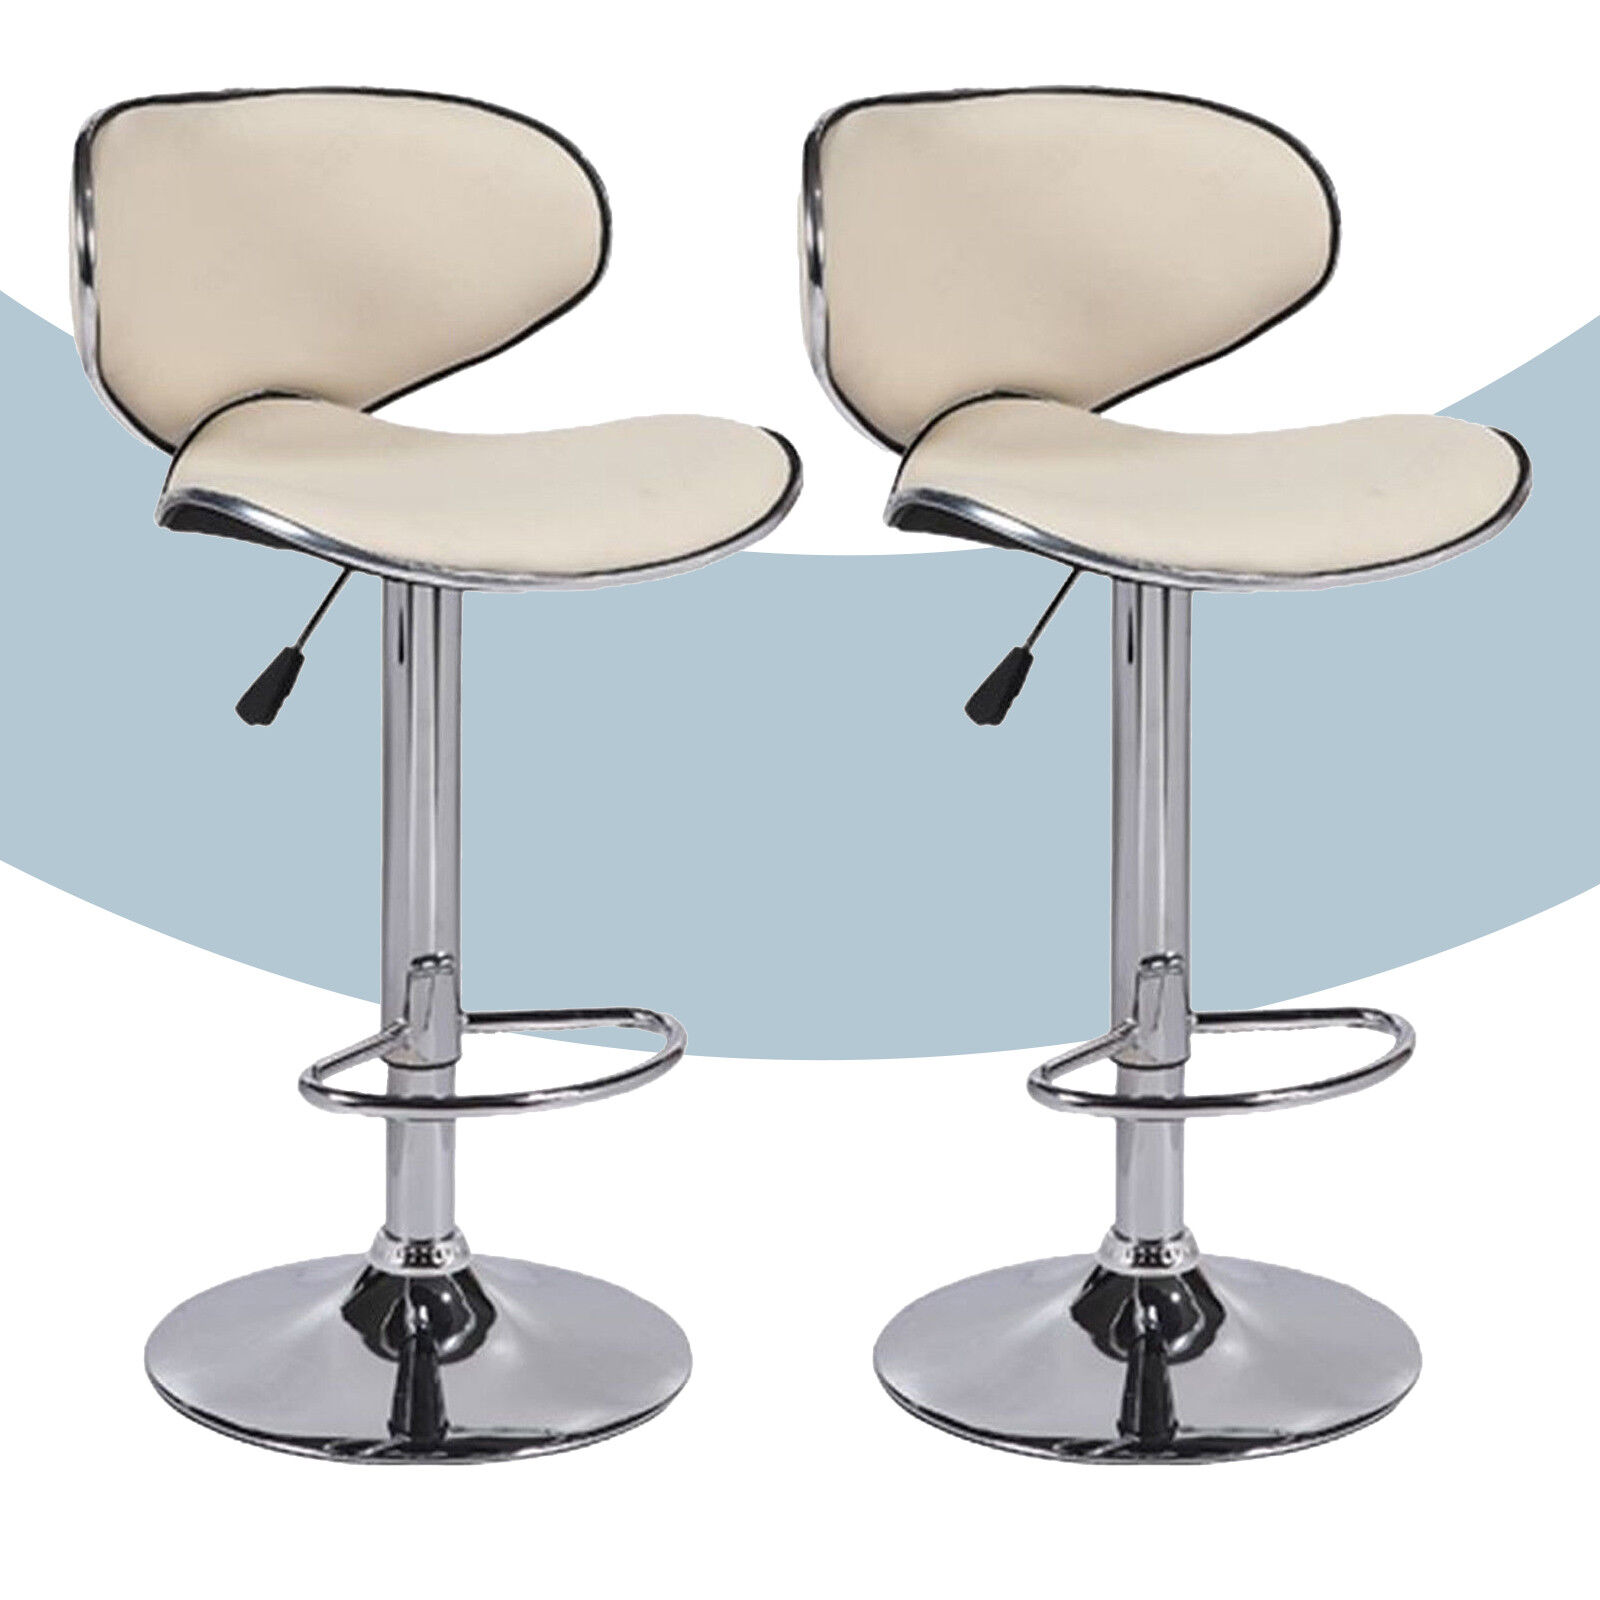 Details About Adjule Set Of 2 Bar Stools Pu Leather Hydraulic Swivel Dining Chair In Cream